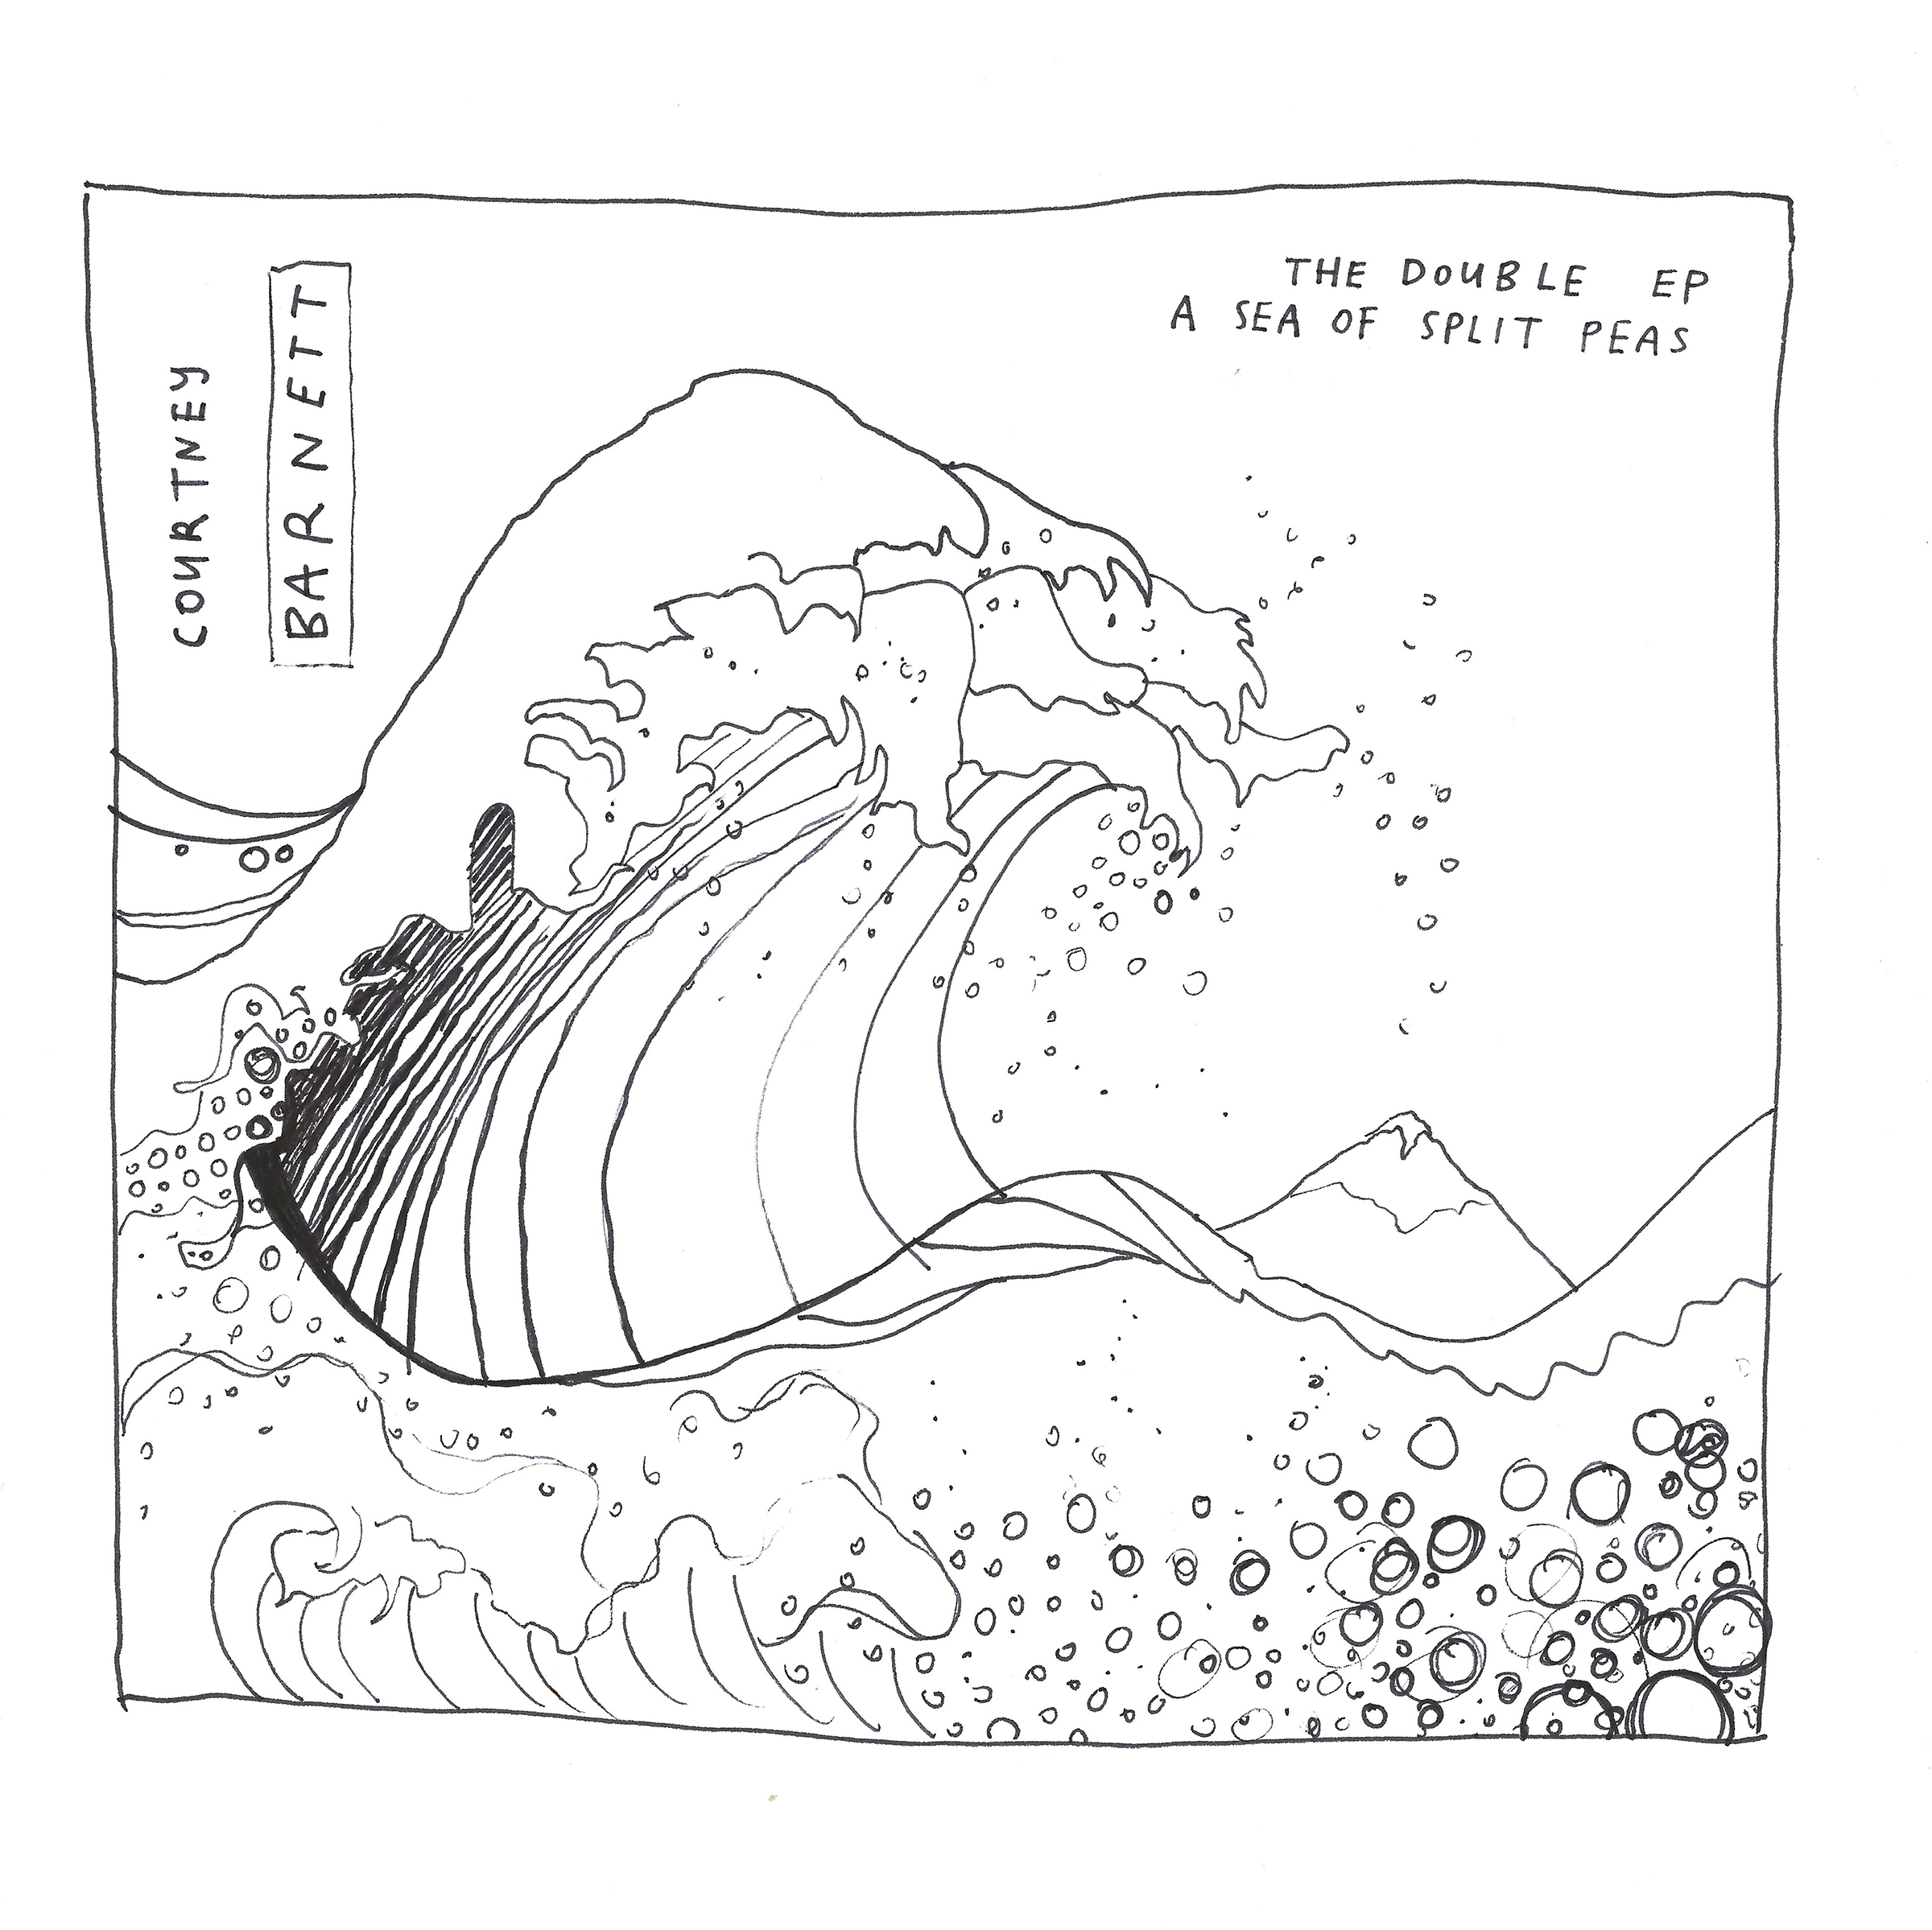 Courtney Barnett 'The Double EP: A Sea of Split Peas'